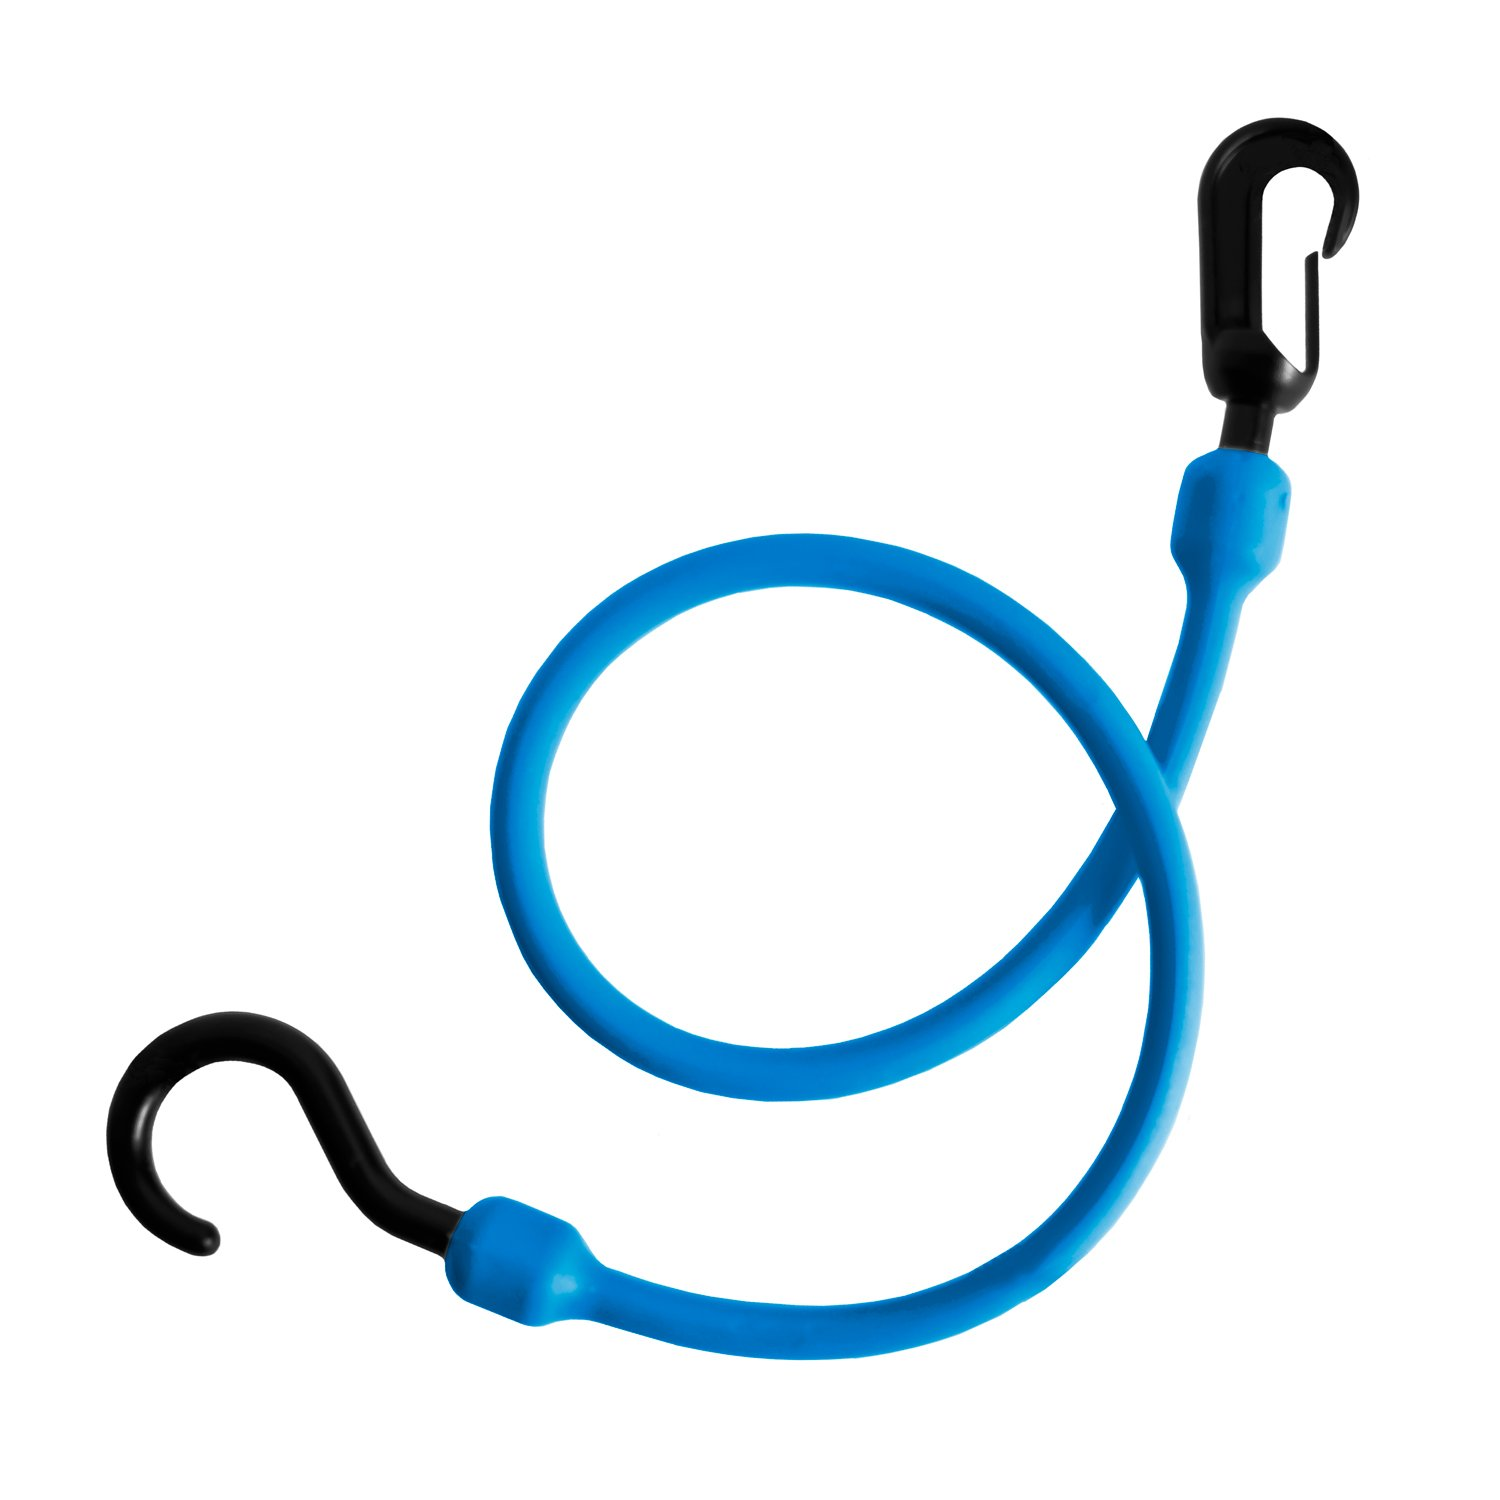 24 PC24FEBL Fixed End Easy Stretch Cord The Perfect Bungee by BihlerFlex Blue 24